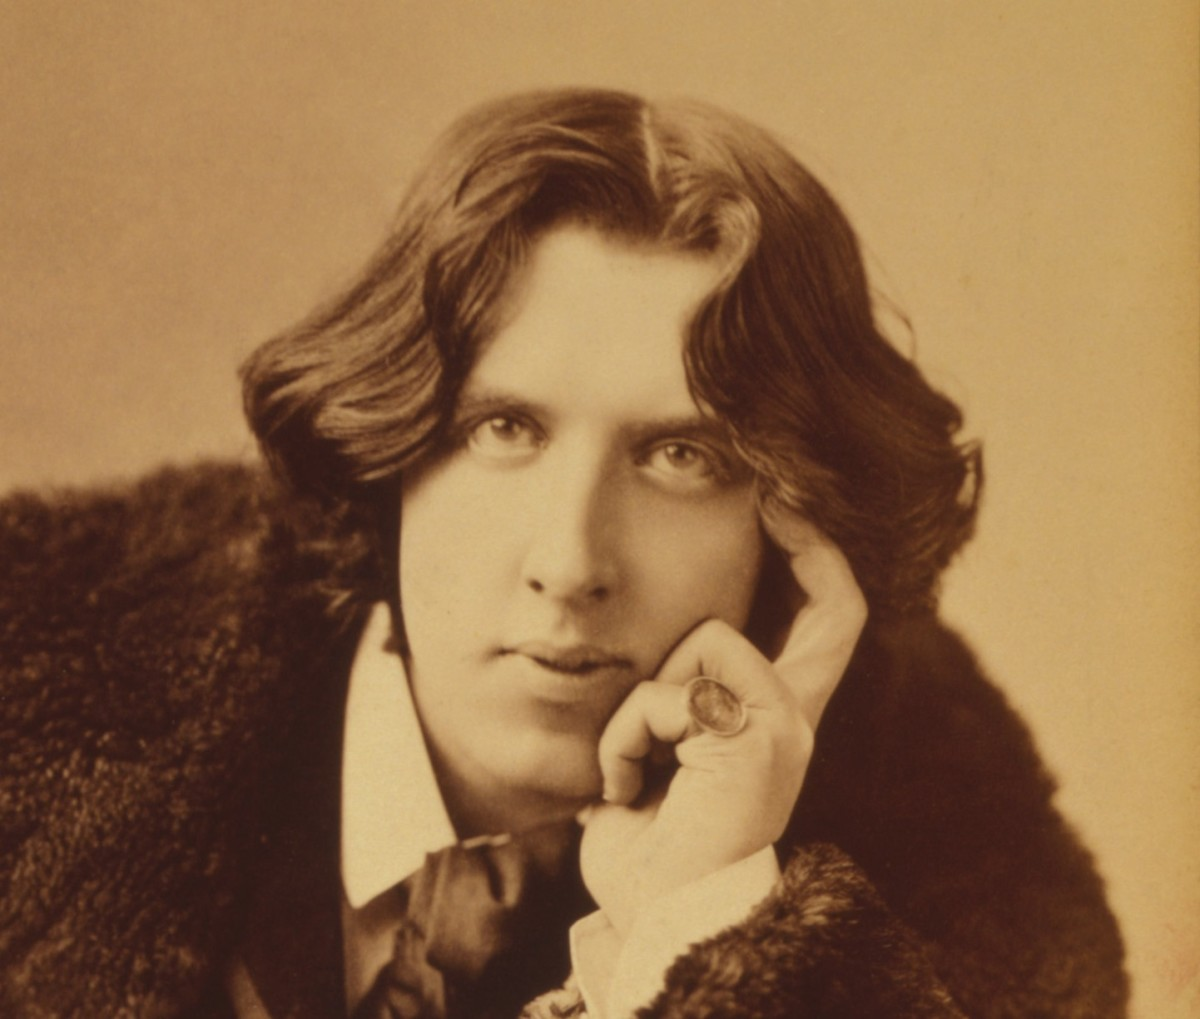 Oscar Wilde born 16 October 1854 died 30 November 1900